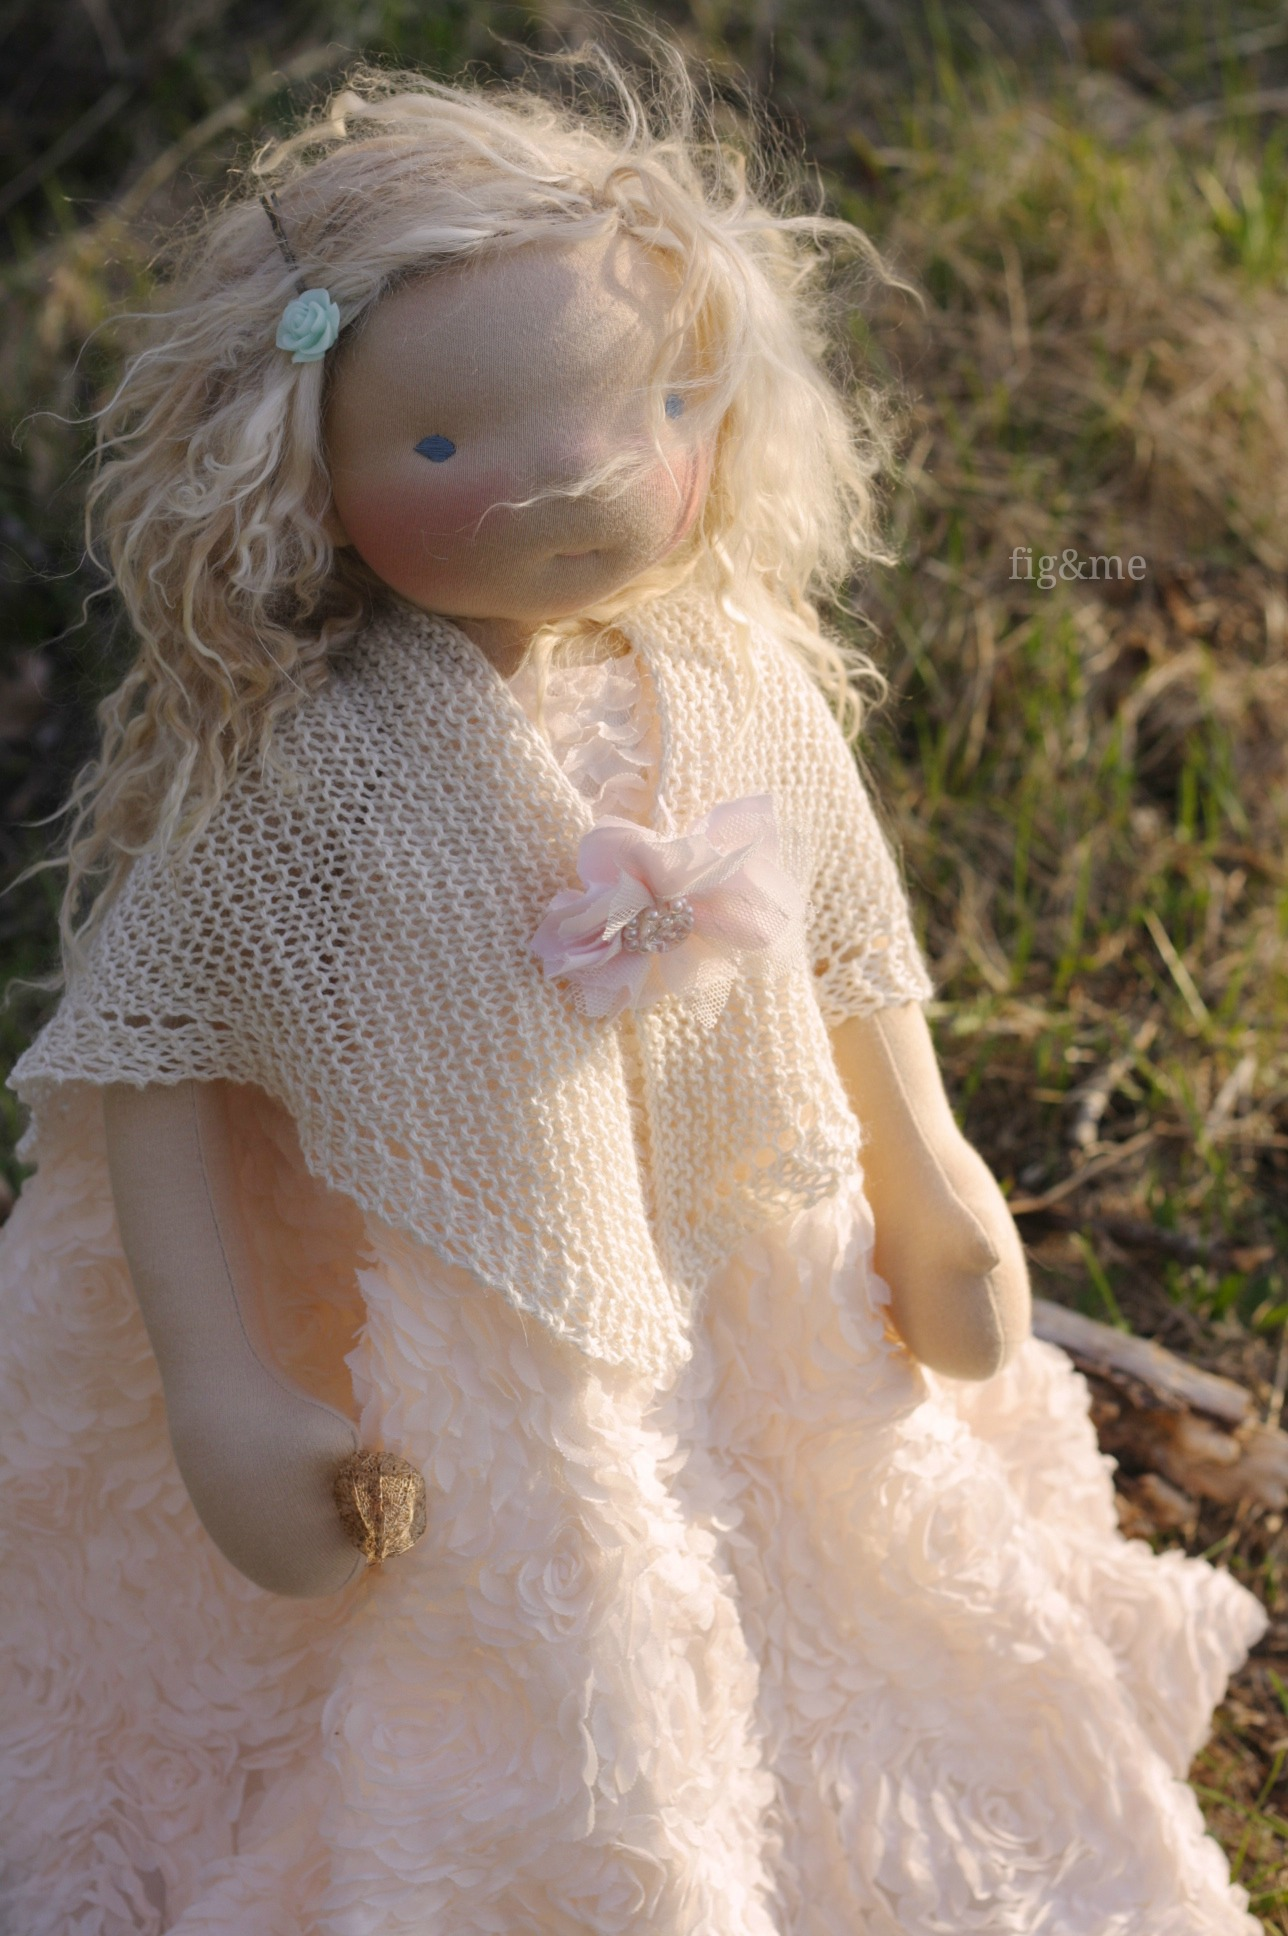 In her beautiful tulle dress, by Fig&me